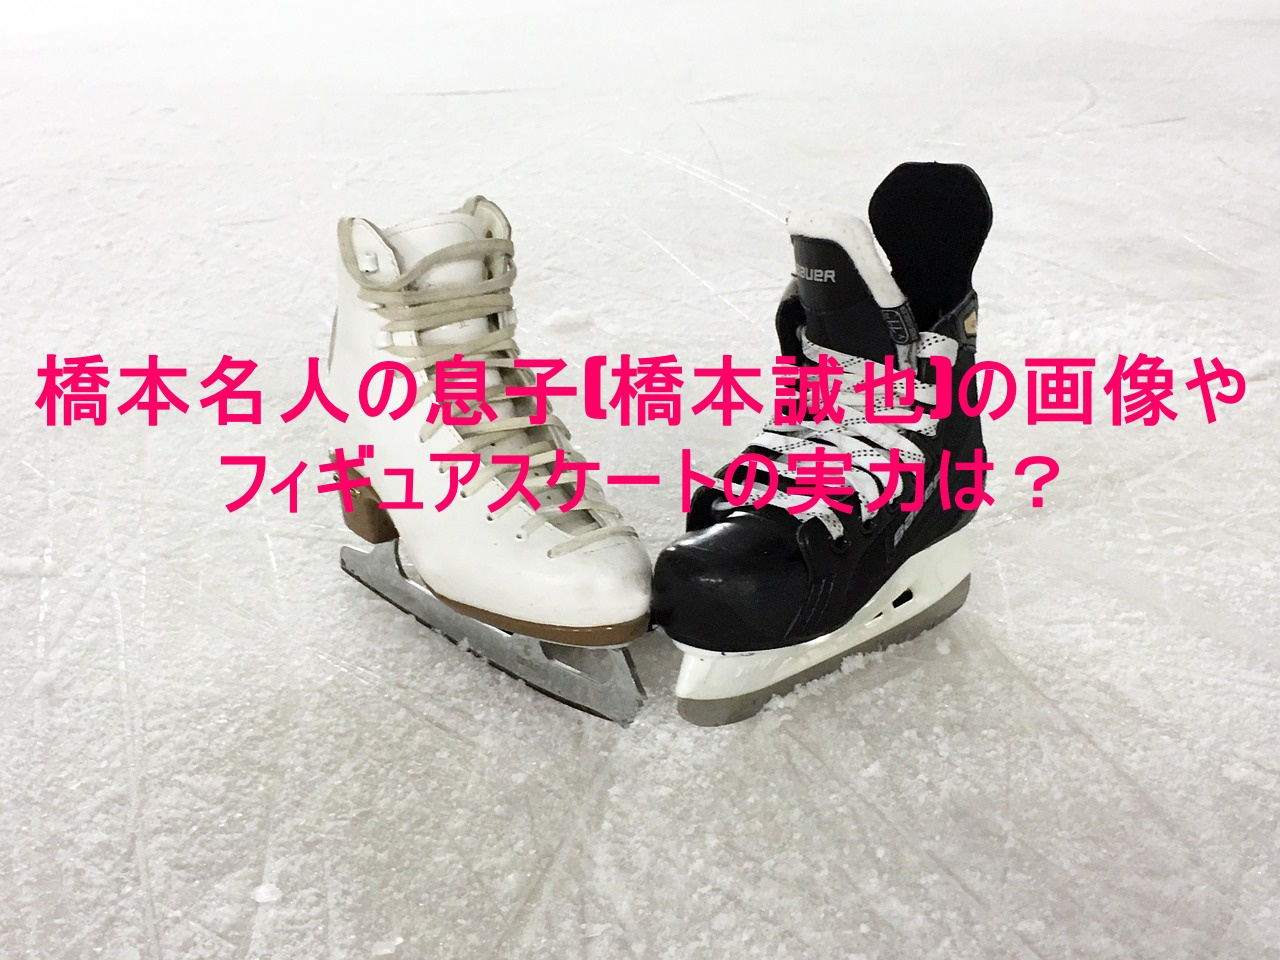 ice,skating,photo